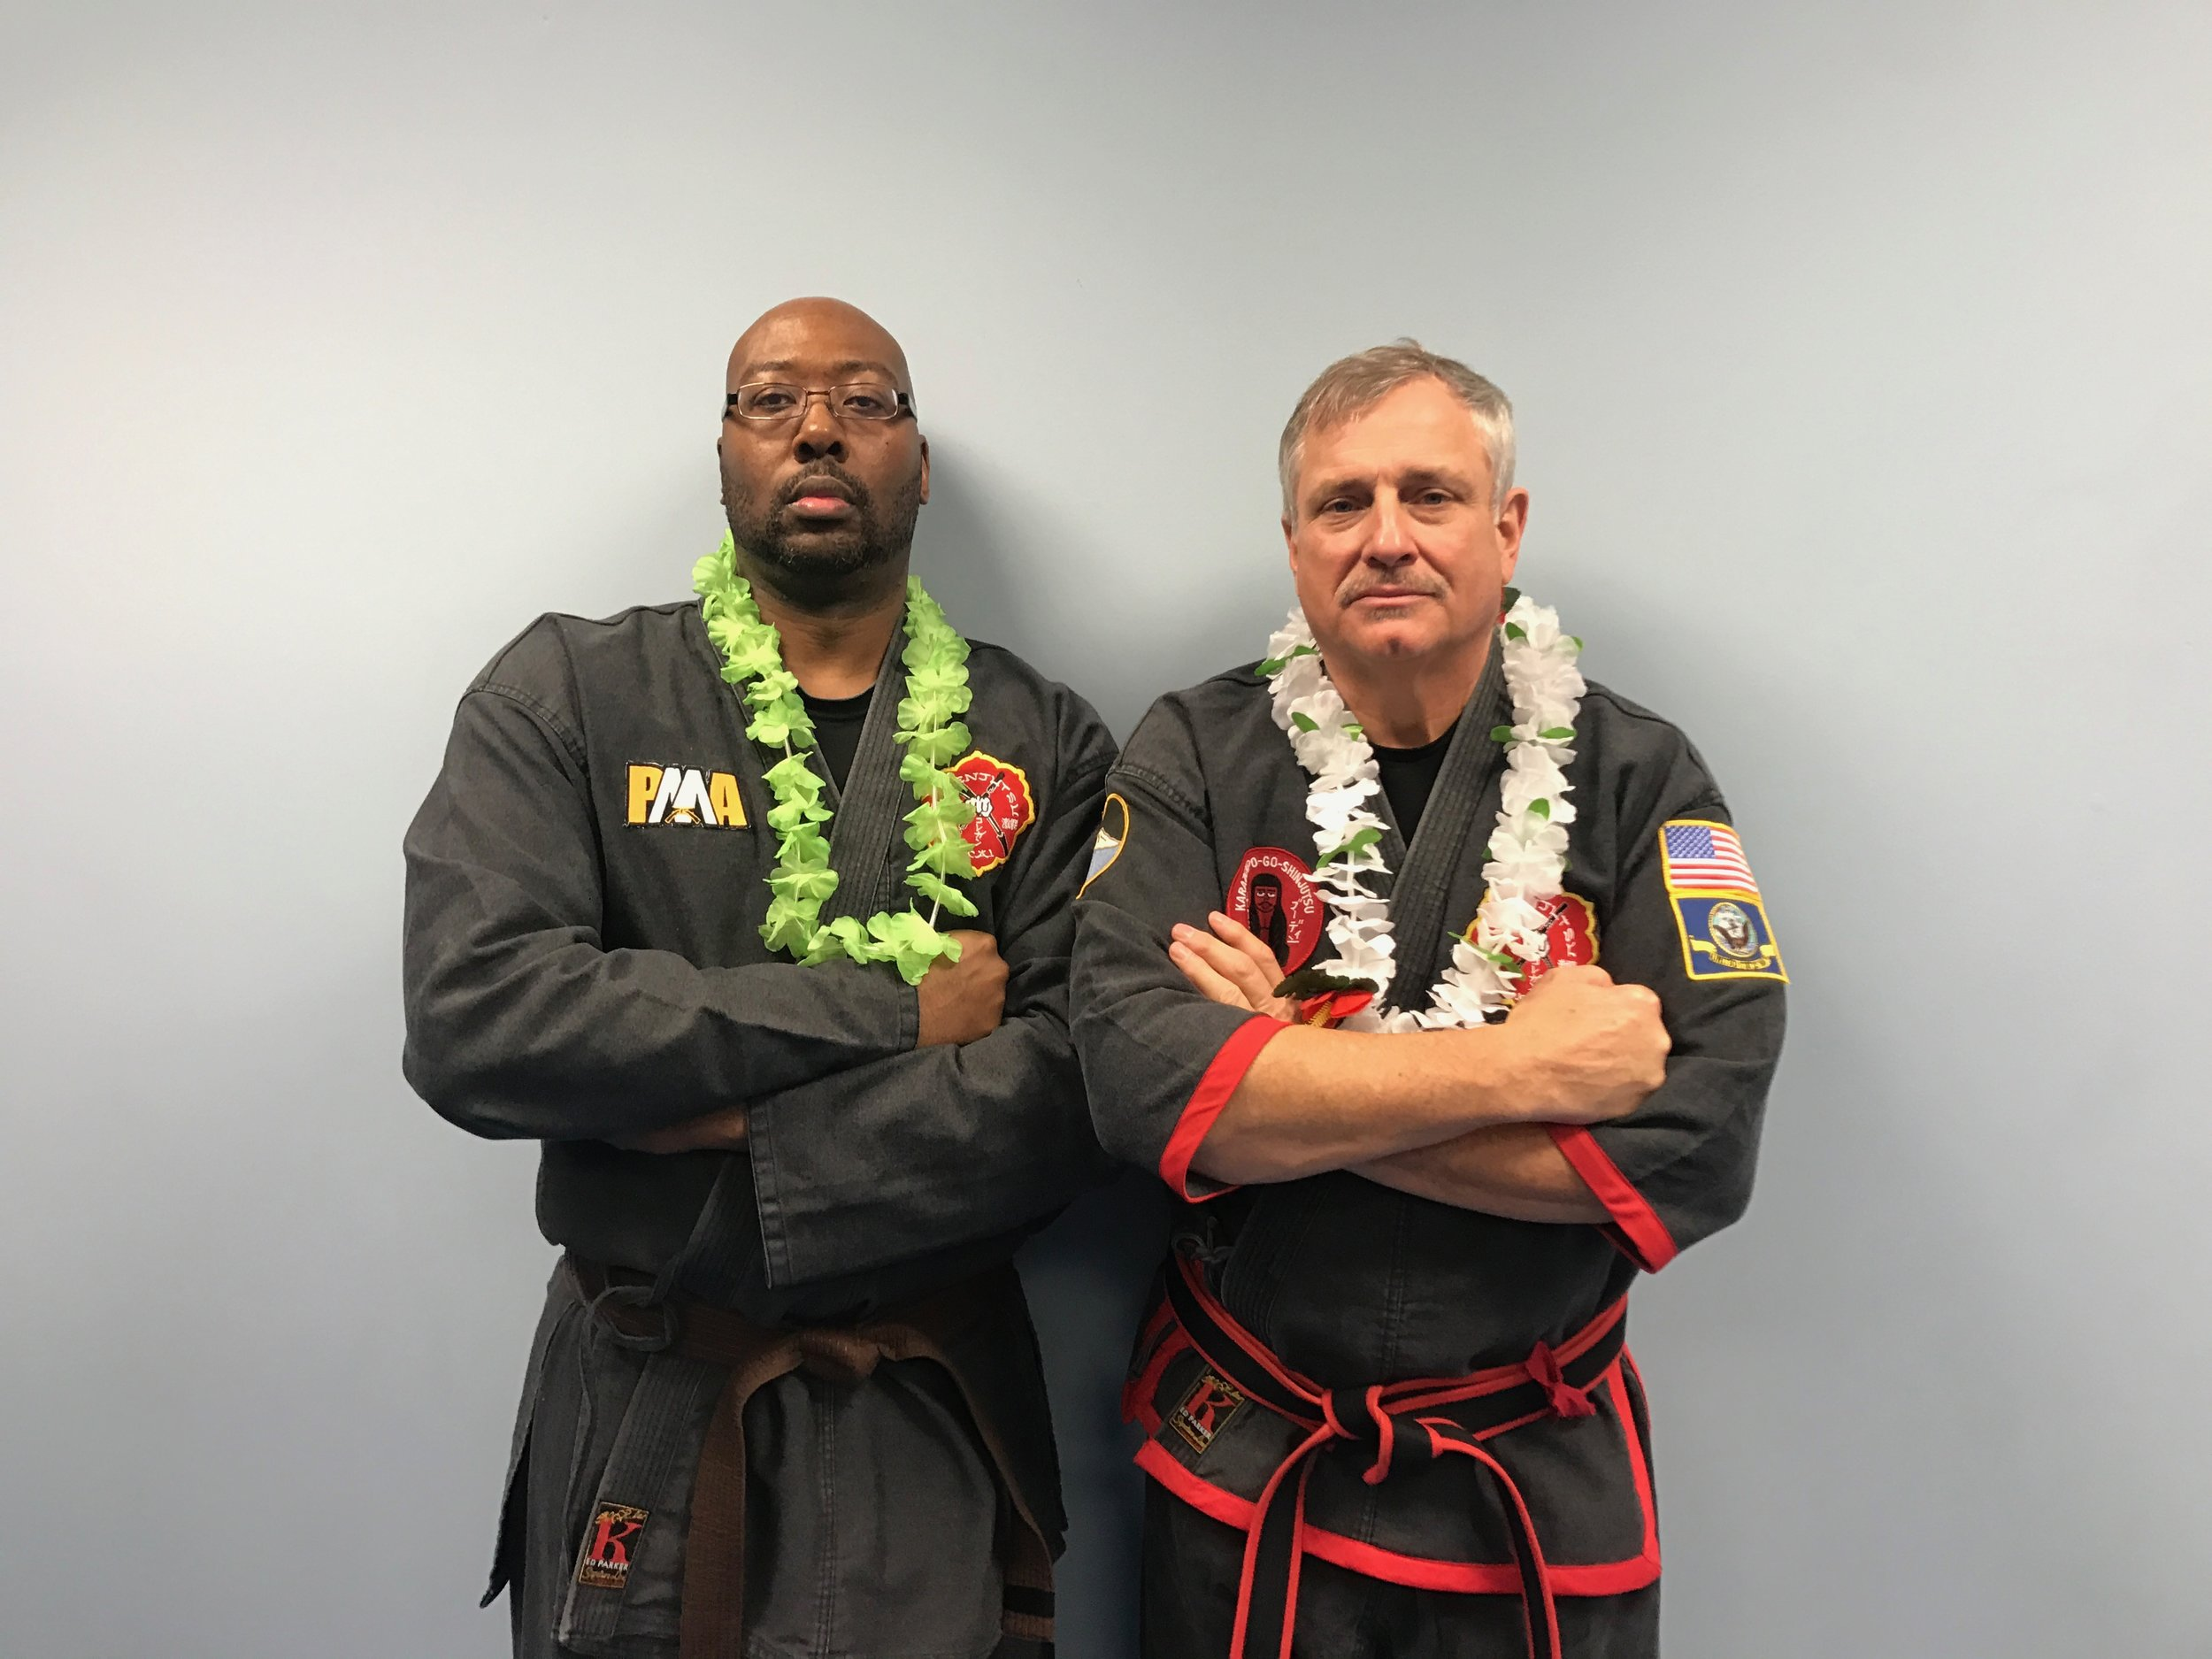 Monty alongside FILKENJUTSU founder, SIJo Bruce Corrigan, at one of the Black Belt Test Luau's!